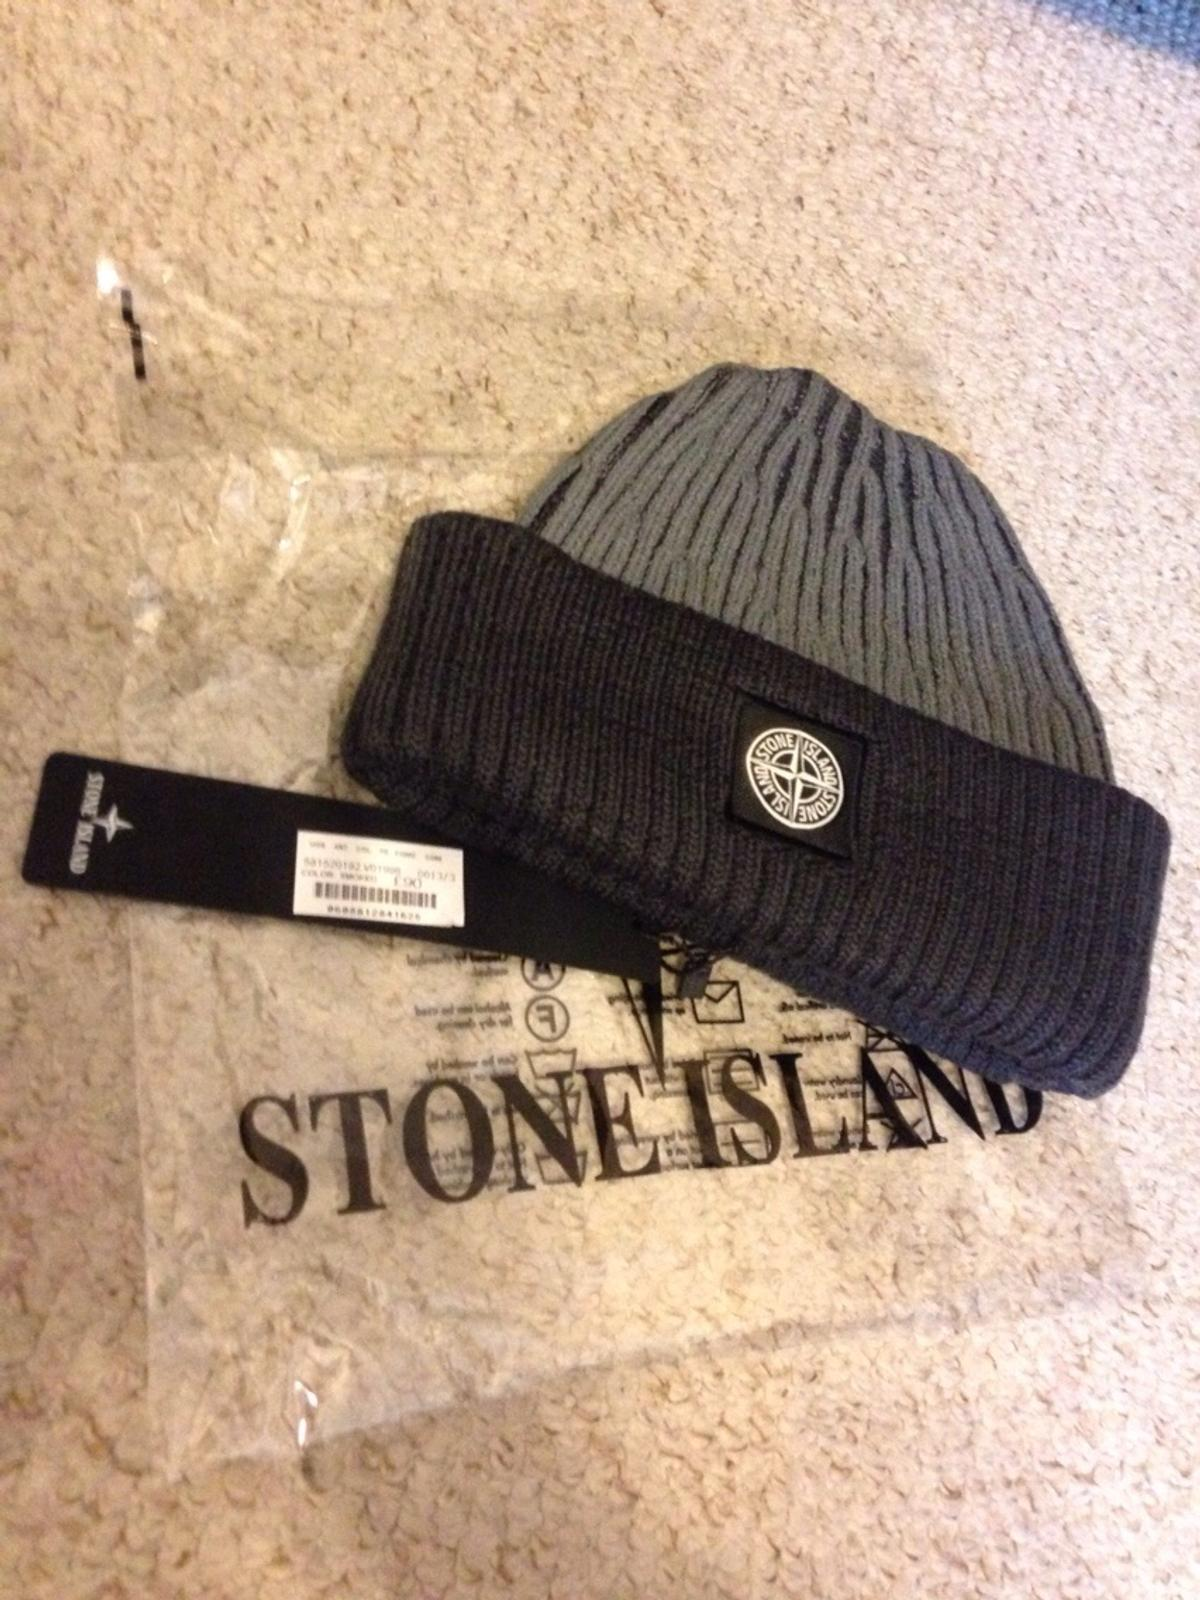 f43c0f532f5a1 Stone island two tone ribbed beanie hat cap in N16 London for £35.00 ...